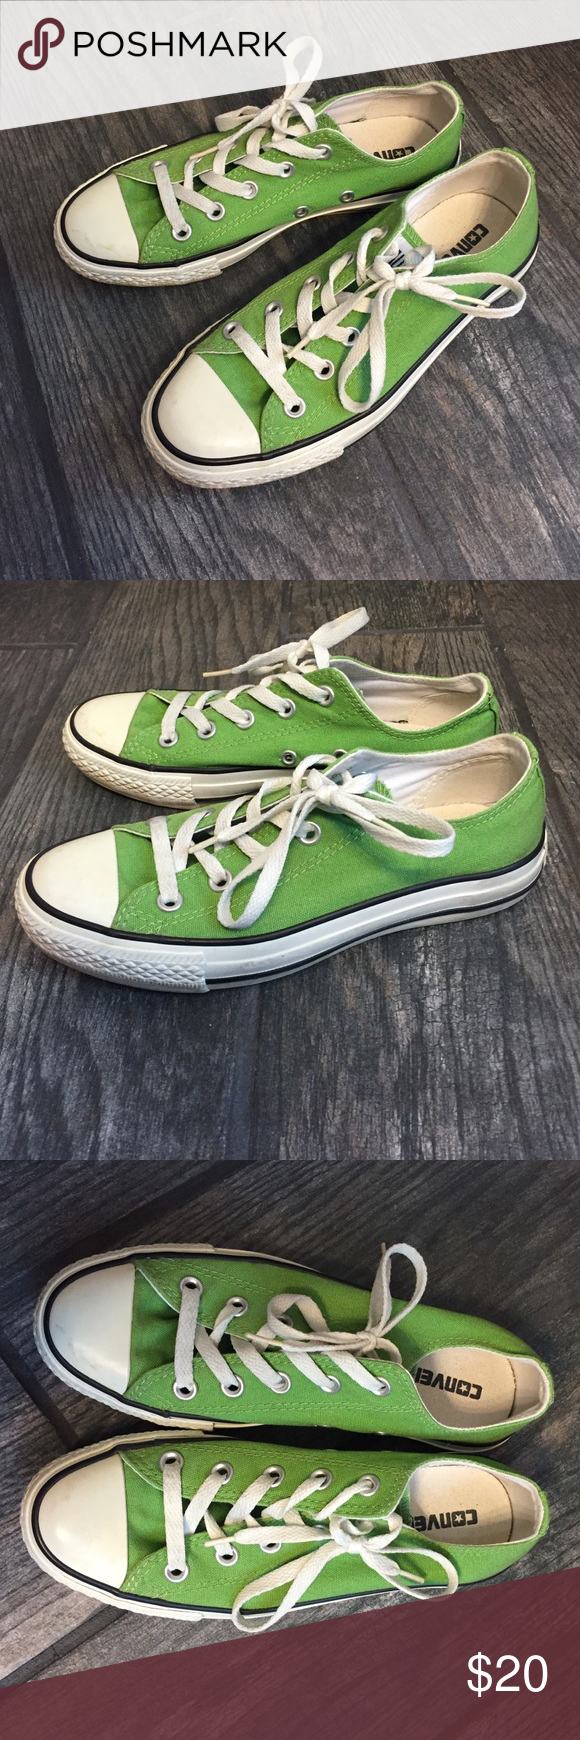 Converse Chuck Taylor All Star Like new! Converse Chuck Taylor All Stars. Men's size 4, women's 6. Excellent condition! Converse Shoes Sneakers